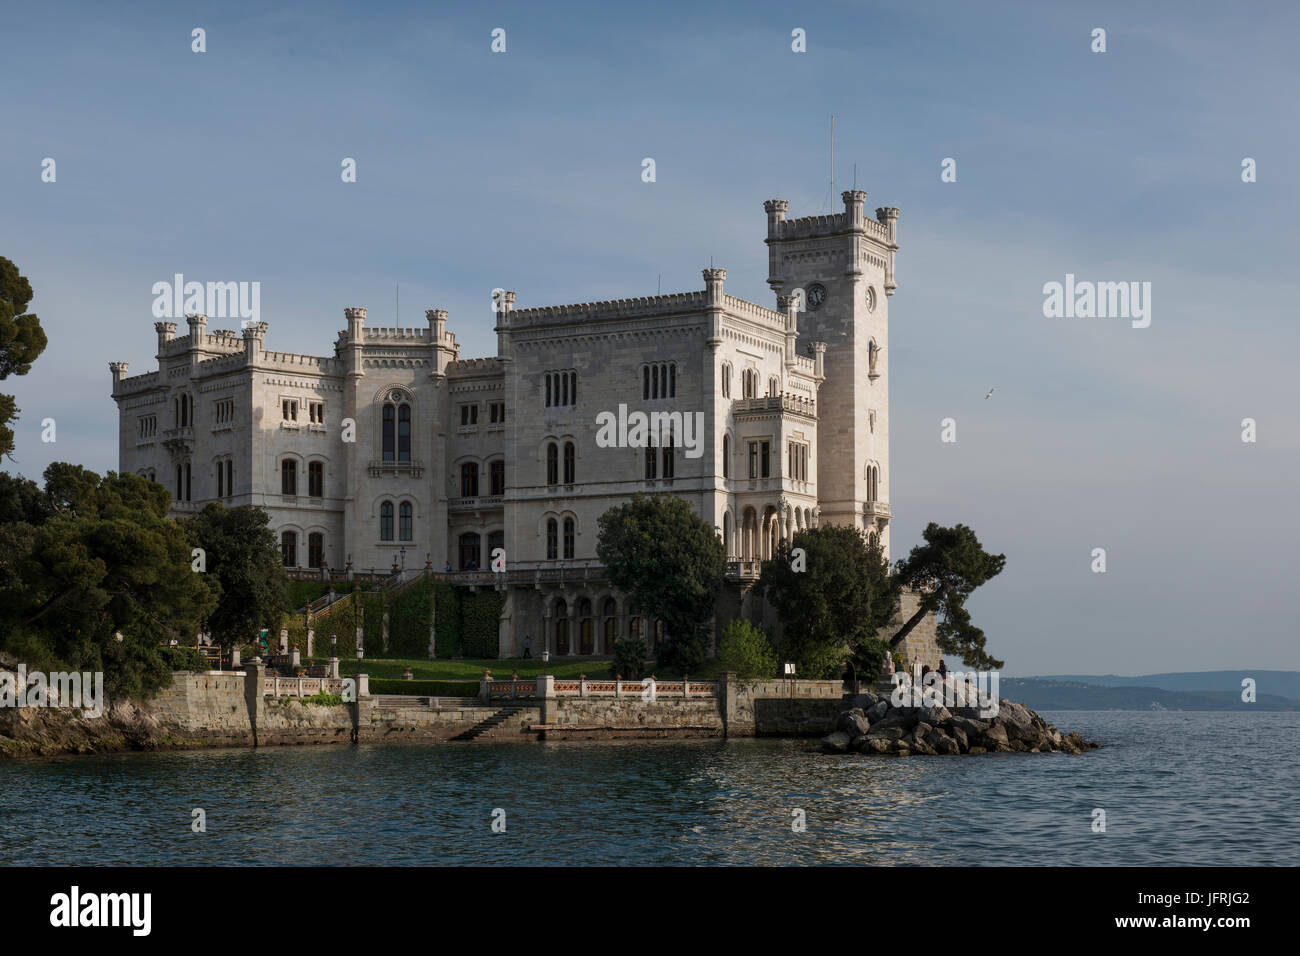 schloss miramare auf den golf von triest von carl junker f r den sterreichischen erzherzog. Black Bedroom Furniture Sets. Home Design Ideas